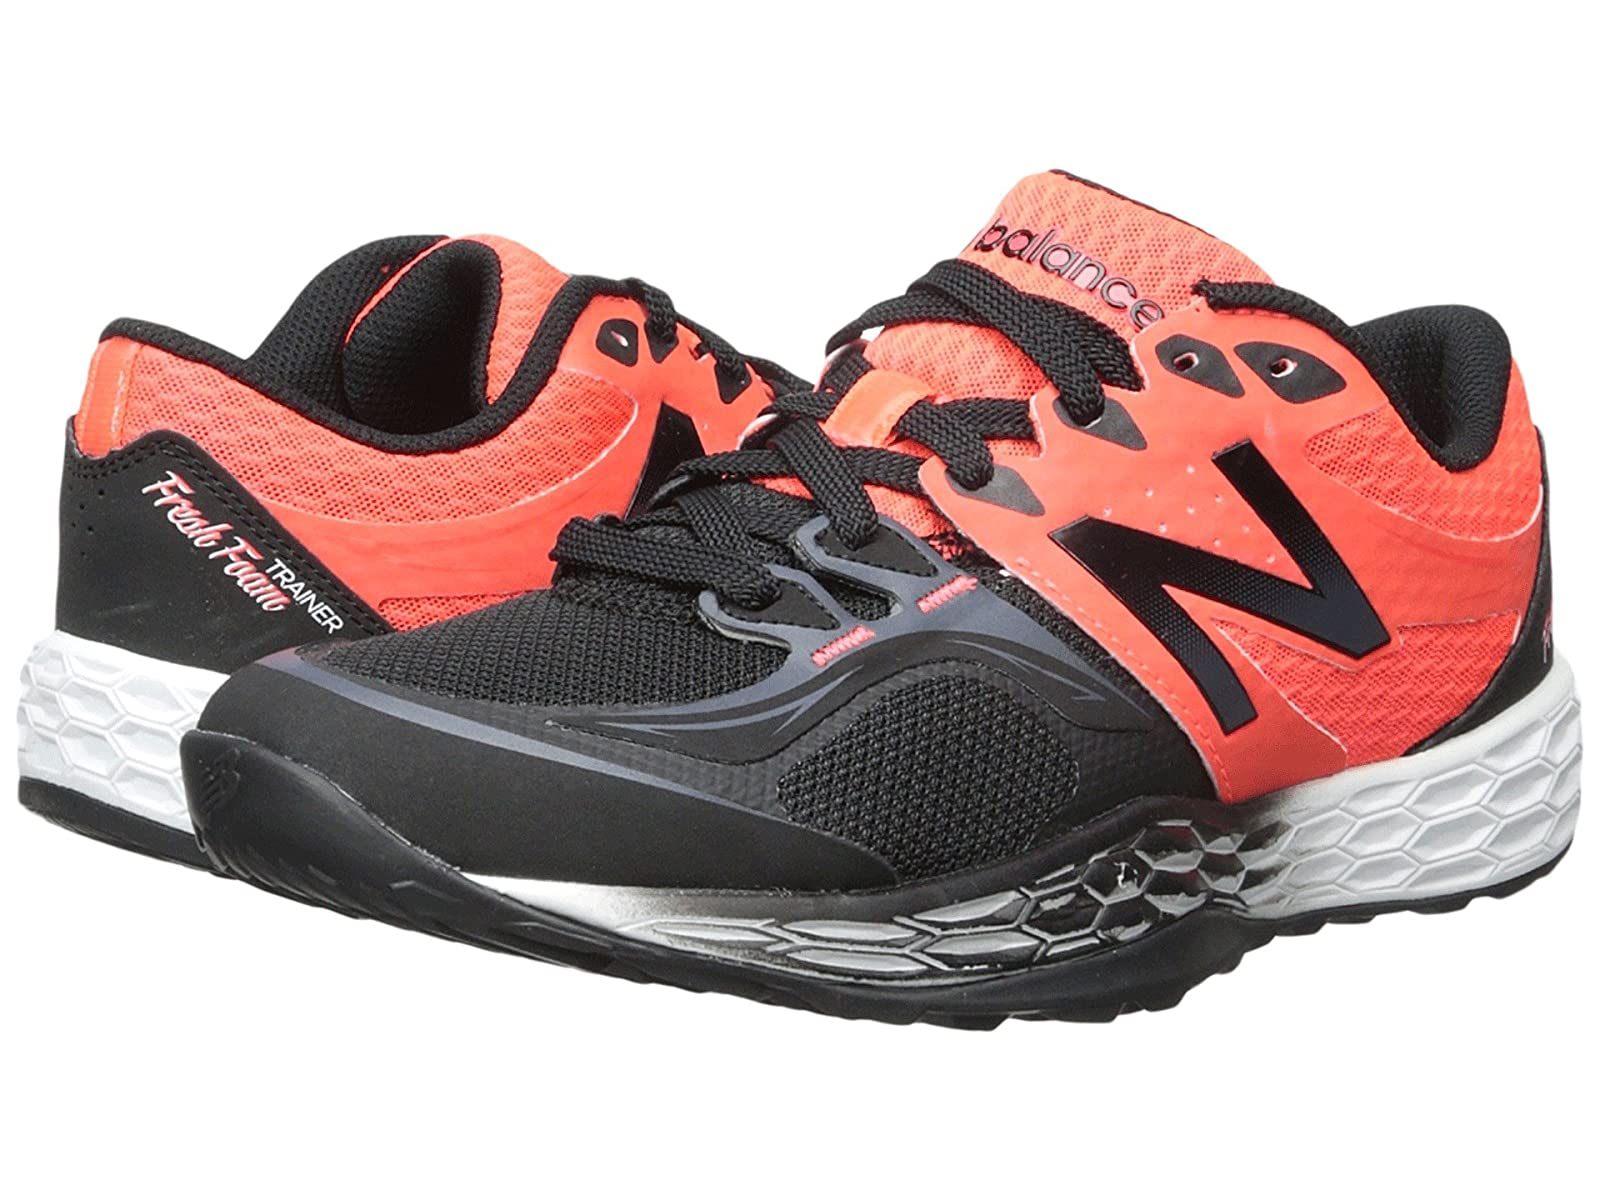 New Balance MX80v2Cheap and distinctive eye-catching shoes